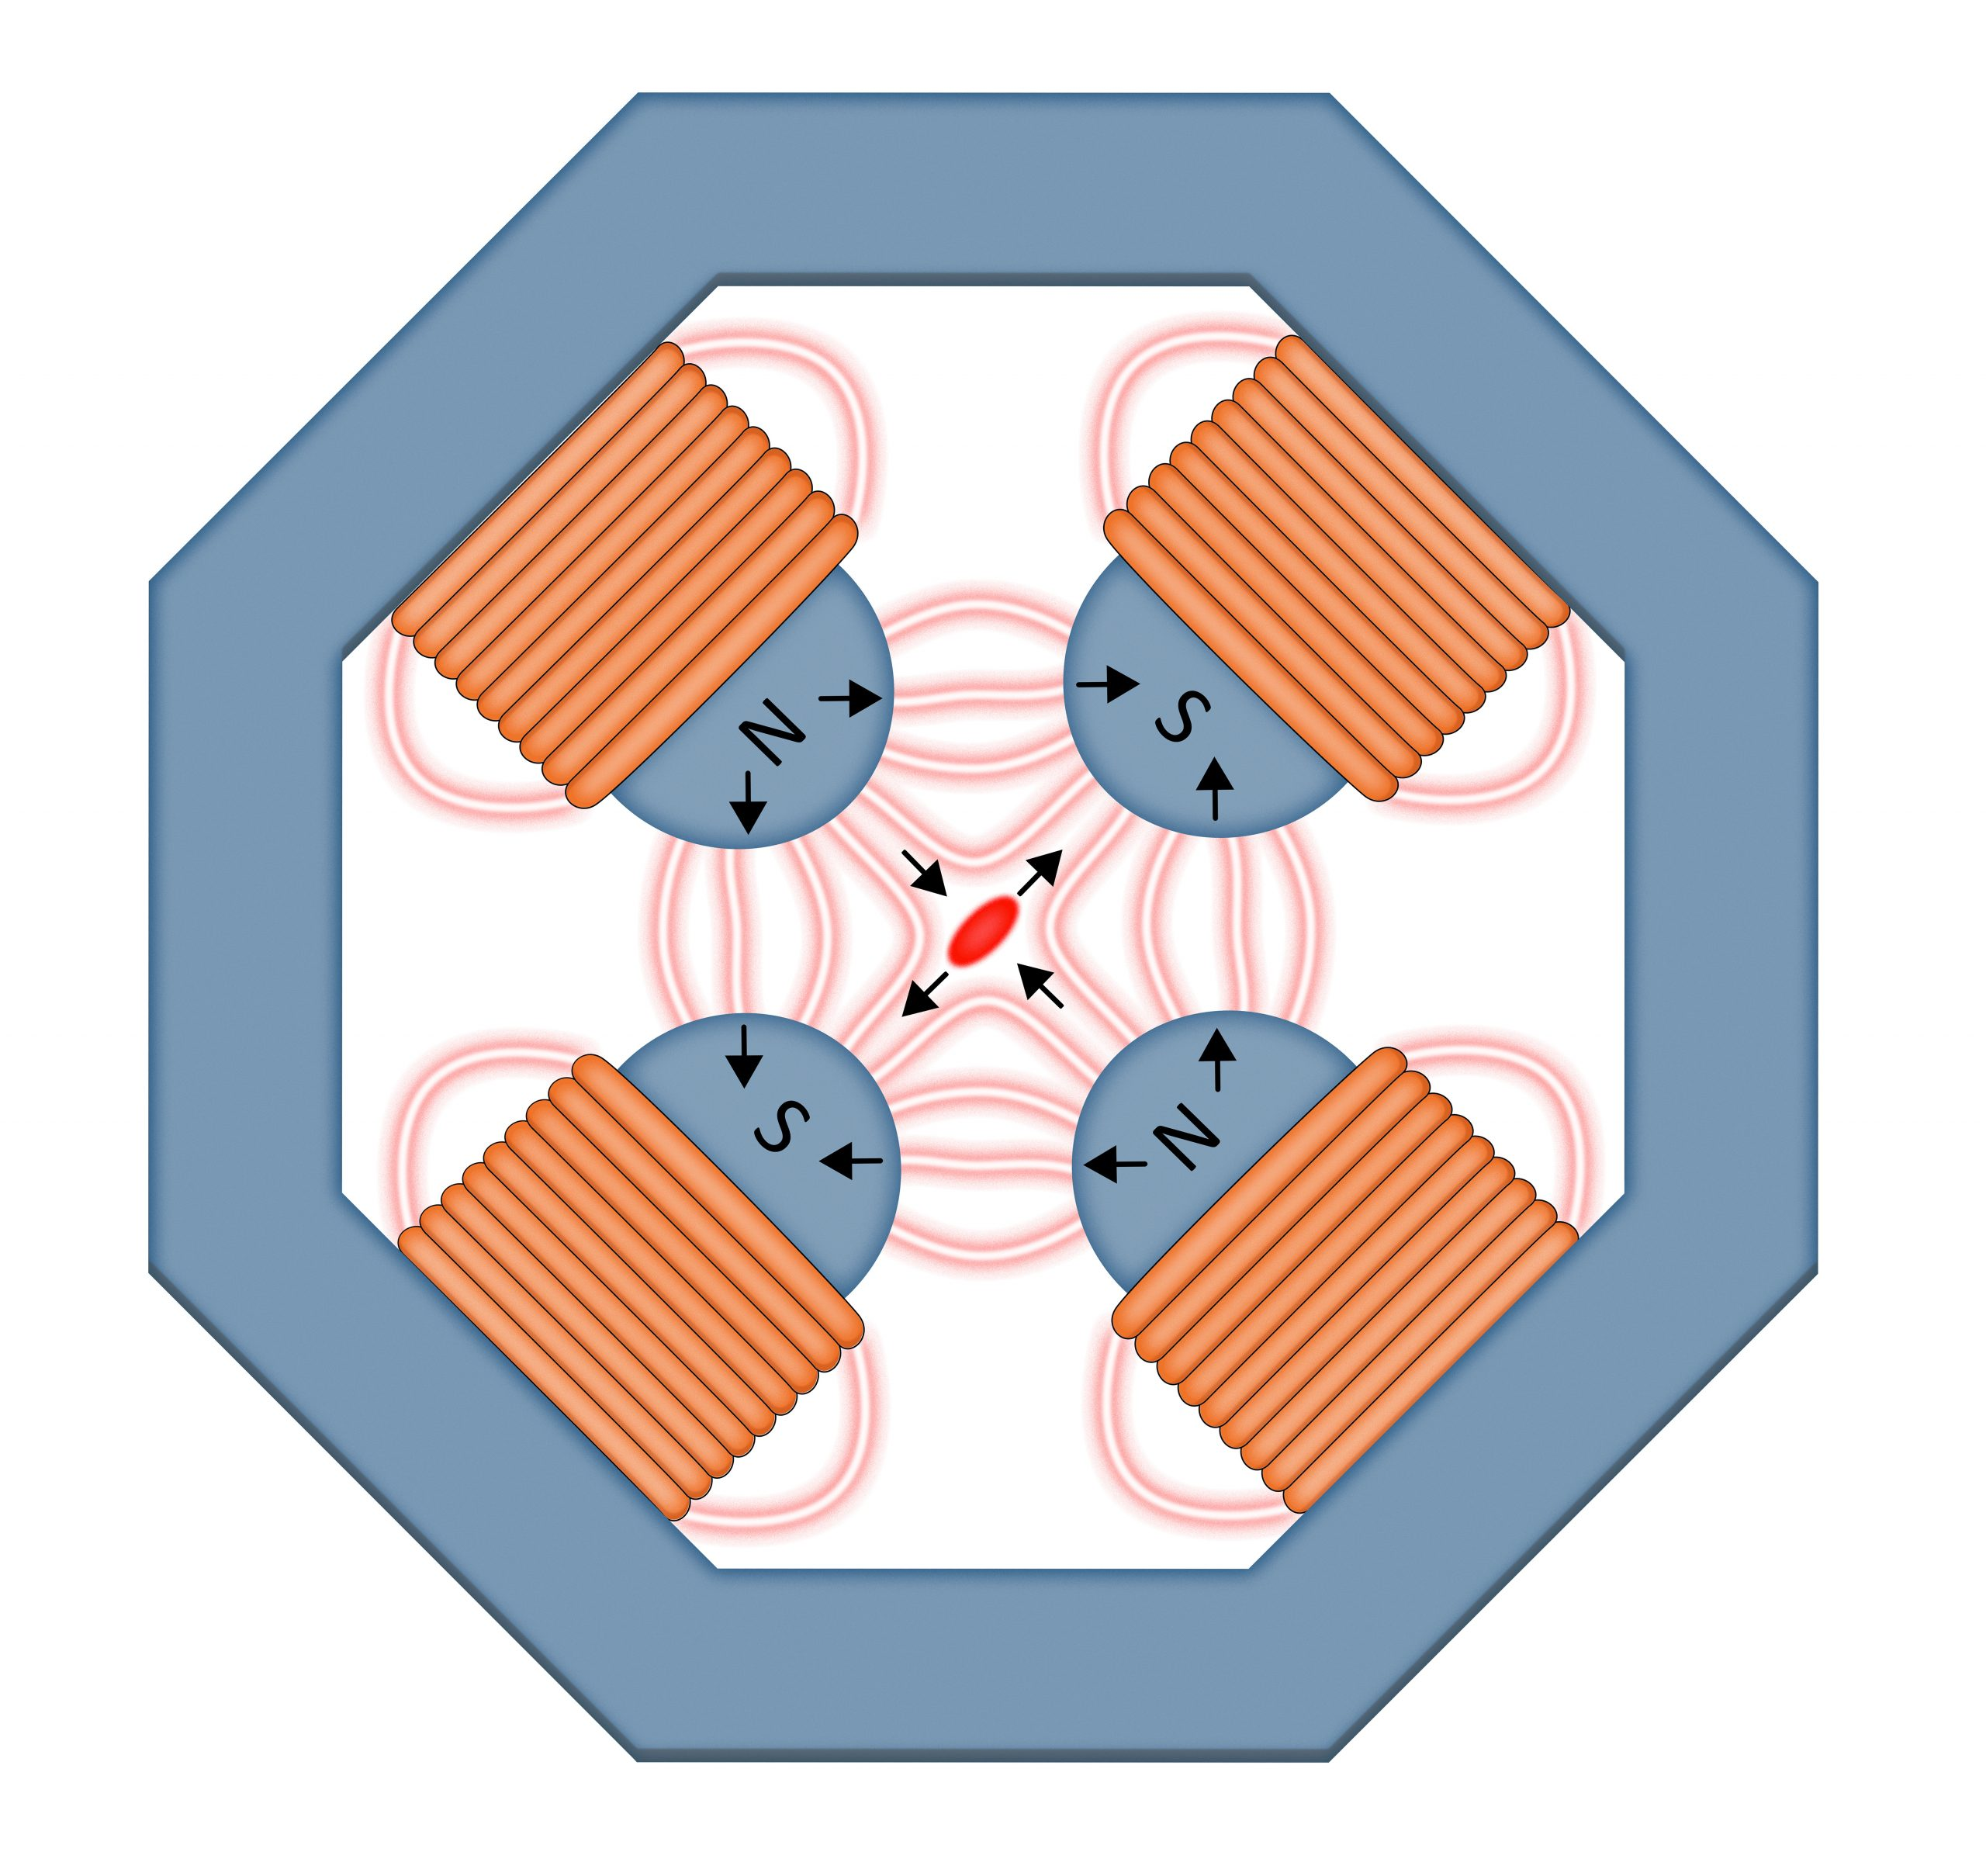 Quadrupoles have four magnetic poles. In a particle accelerator, the poles push particles together if they deviate too far from the centralized beam. Quadrupoles focus in only one plane, so to squeeze an accelerator beam from both sides, these magnets are usually stacked one after the other, each rotated by 90 degrees relative to the previous one. In this way, the beam particles are pushed together in both directions as they travel through successive magnets.